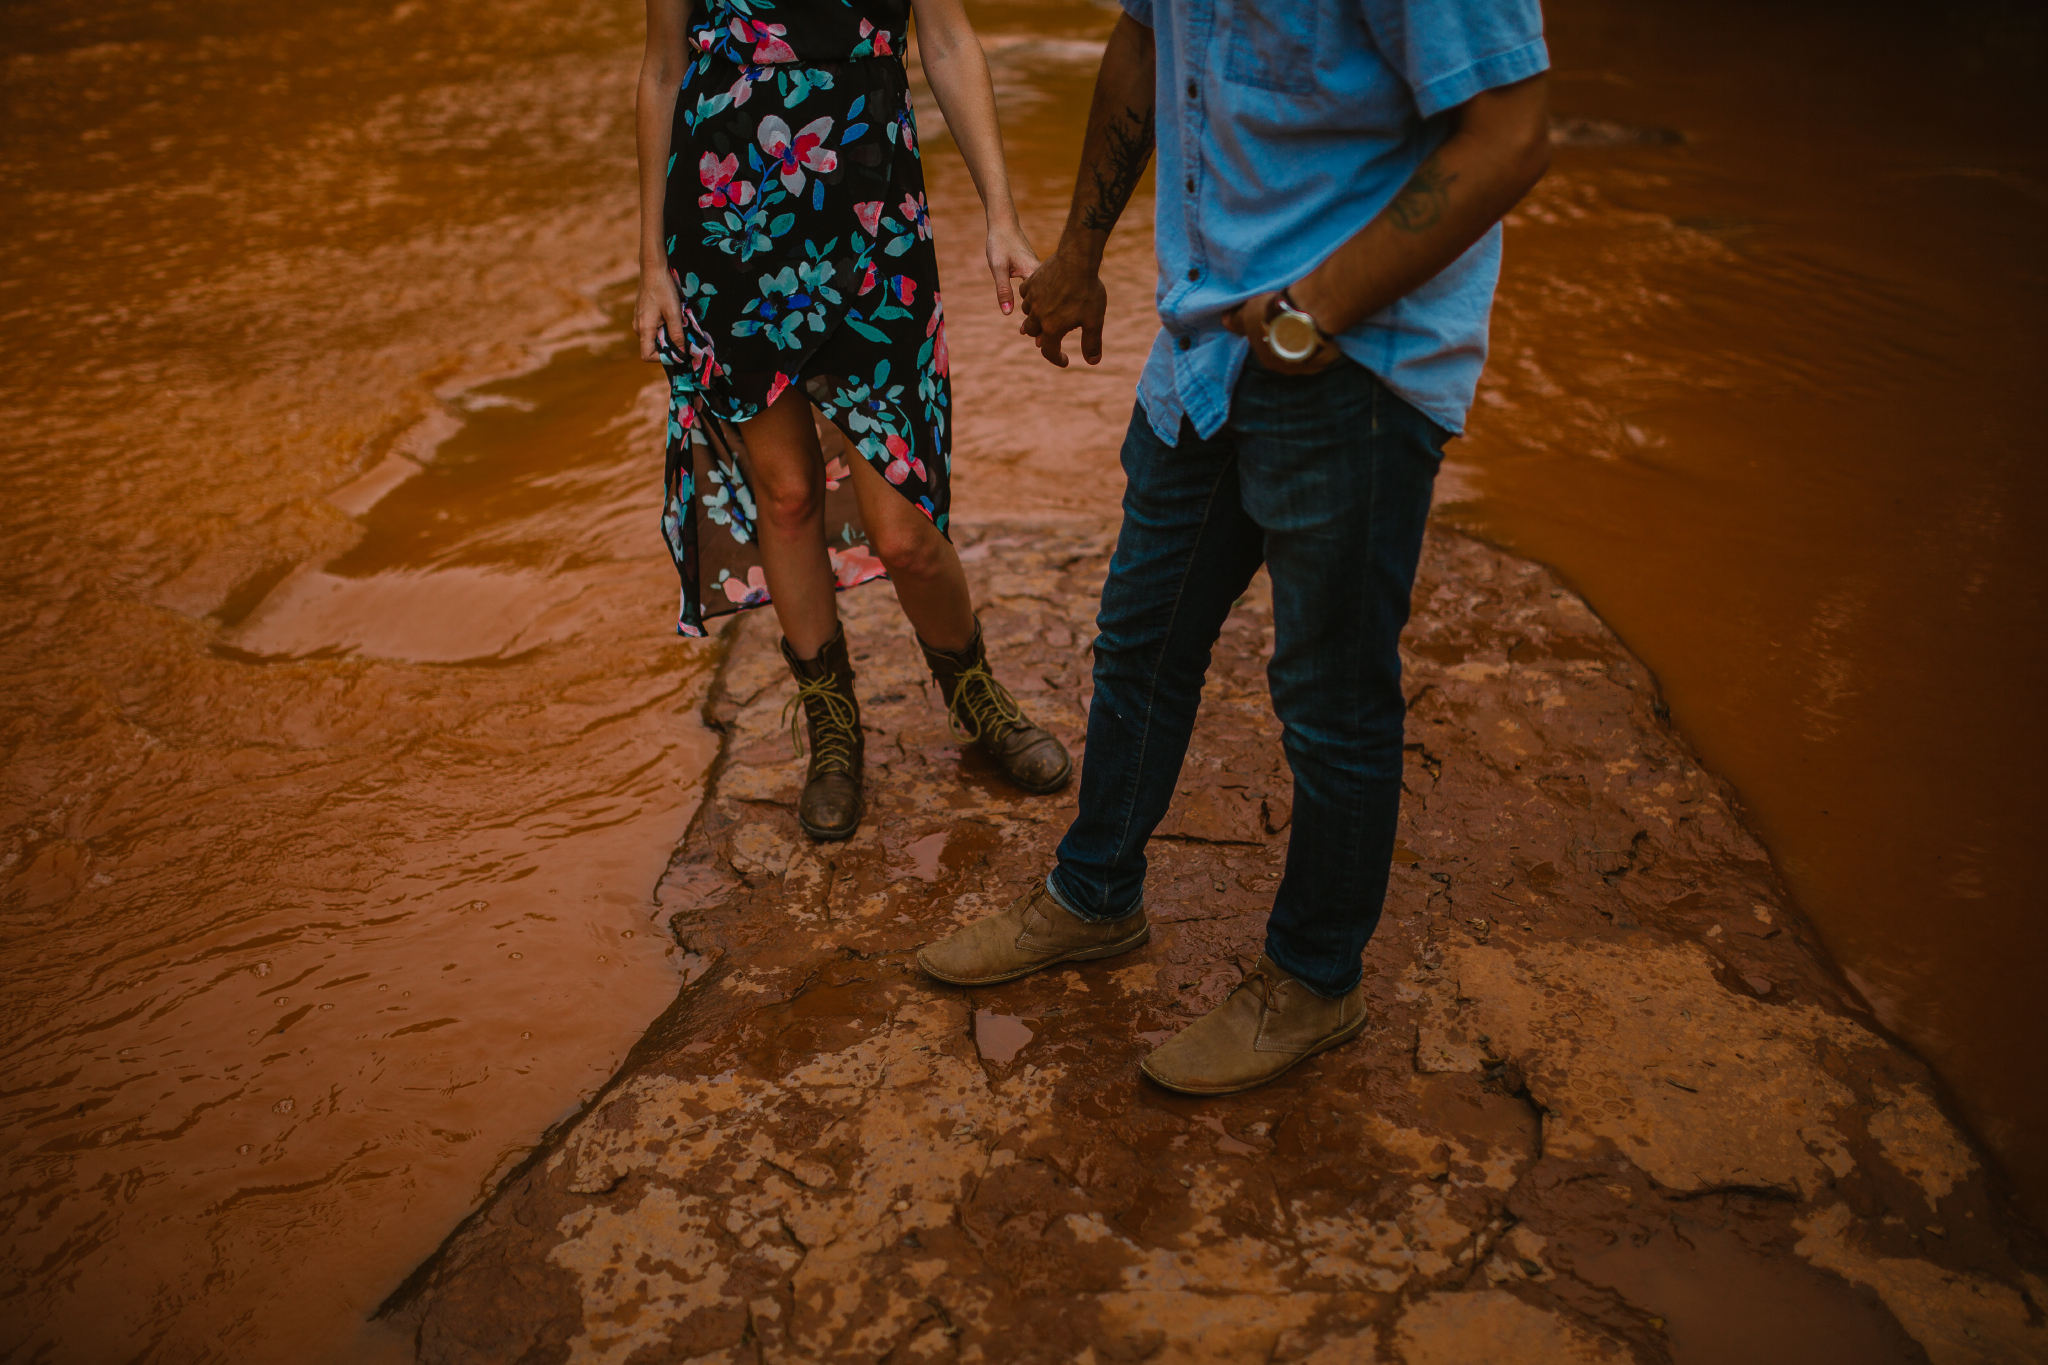 san diego wedding   photographer | lower body of man in blue with woman in boots